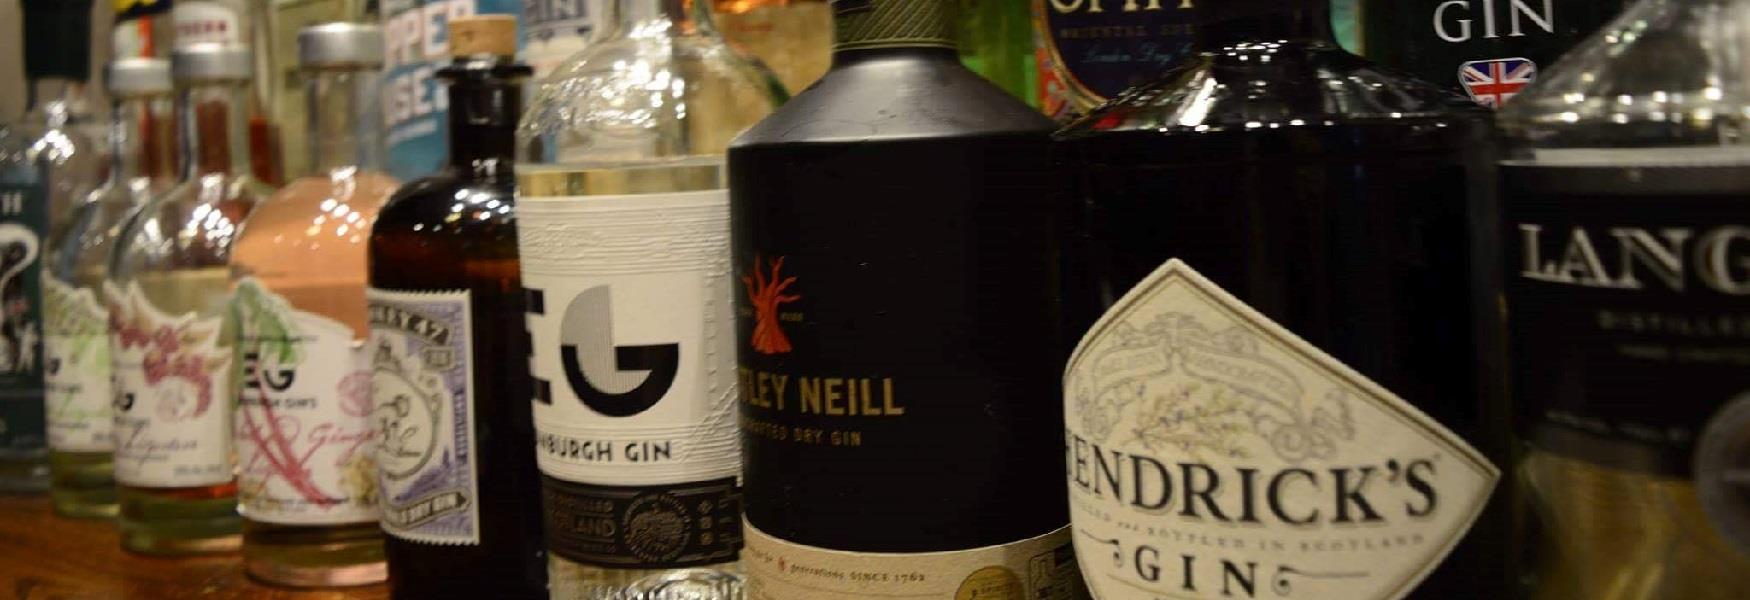 Selection of gins available in a pub